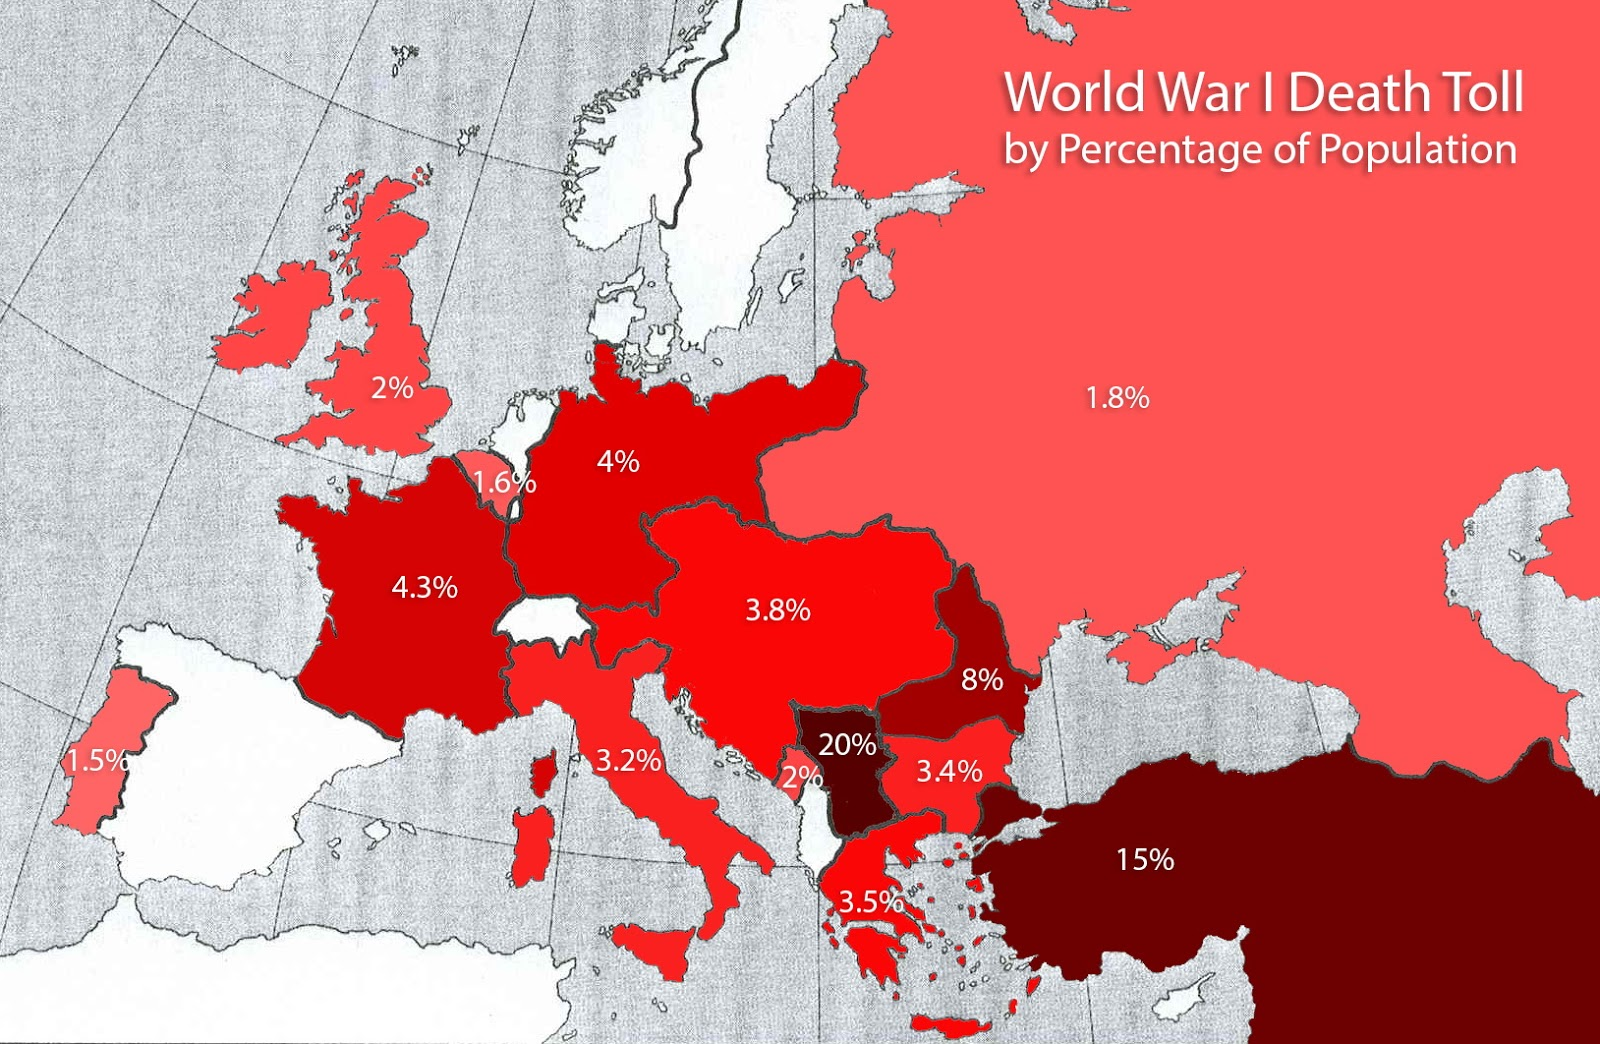 WWI death toll by percent of population